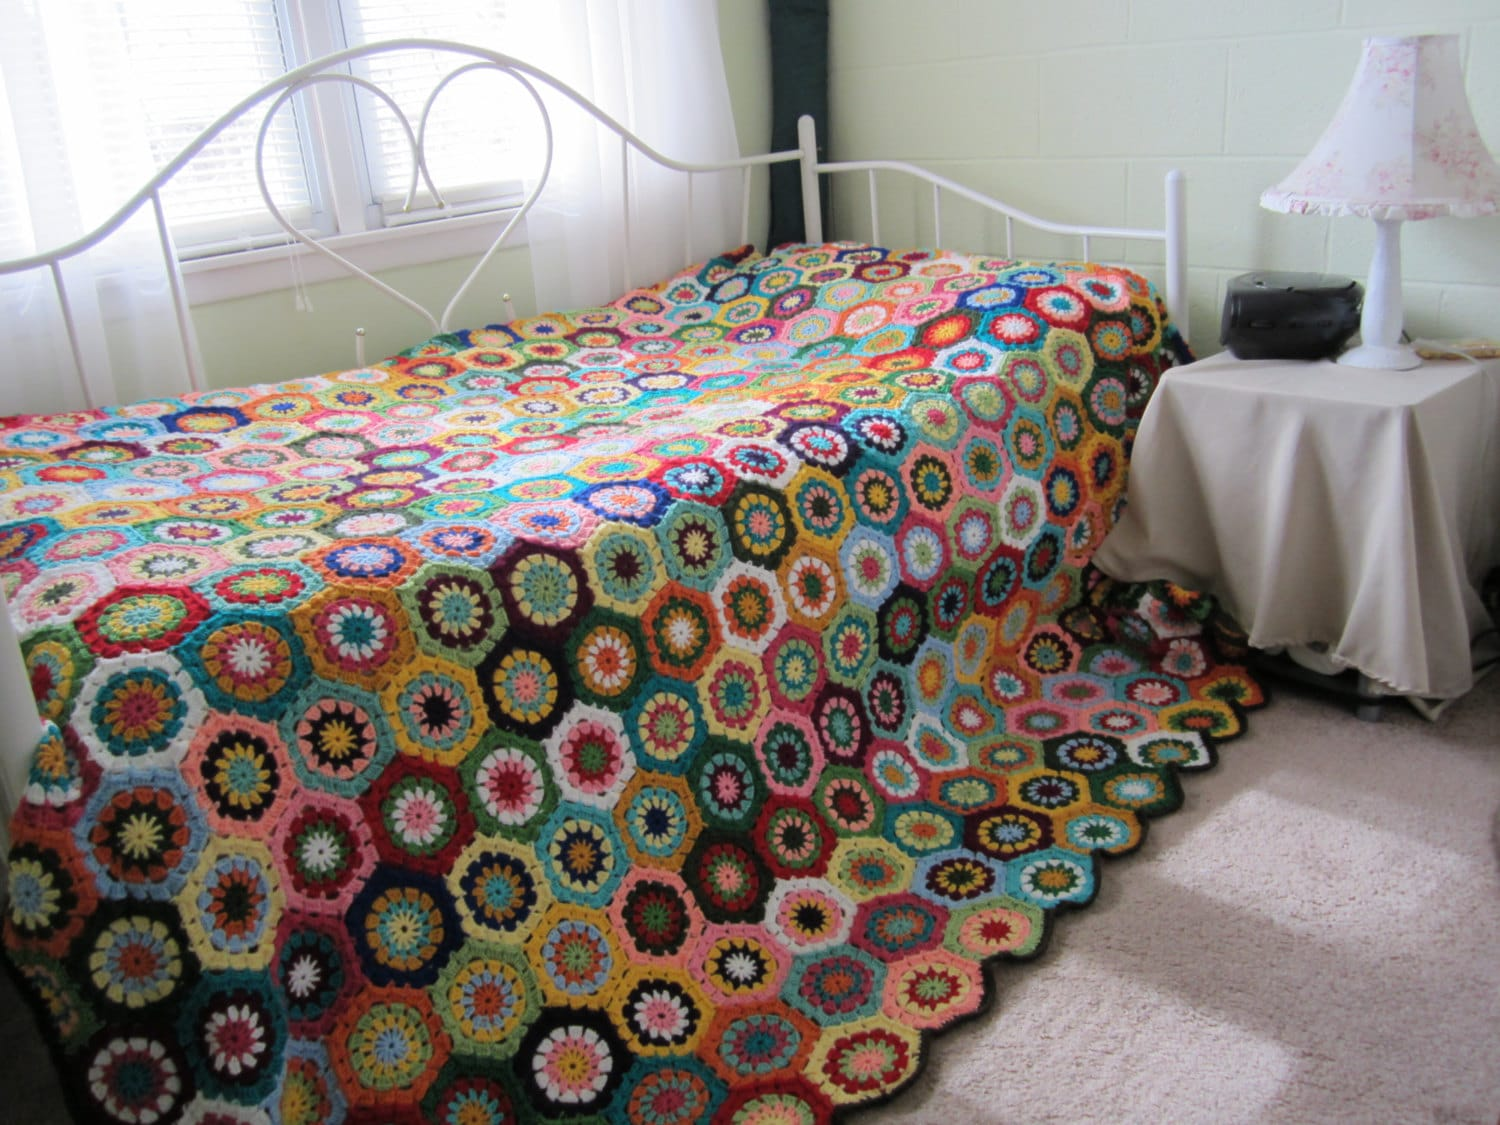 Crochet Queen Size Blanket : Granny Square Crochet Queen size Afghan by GalyaKireva on Etsy